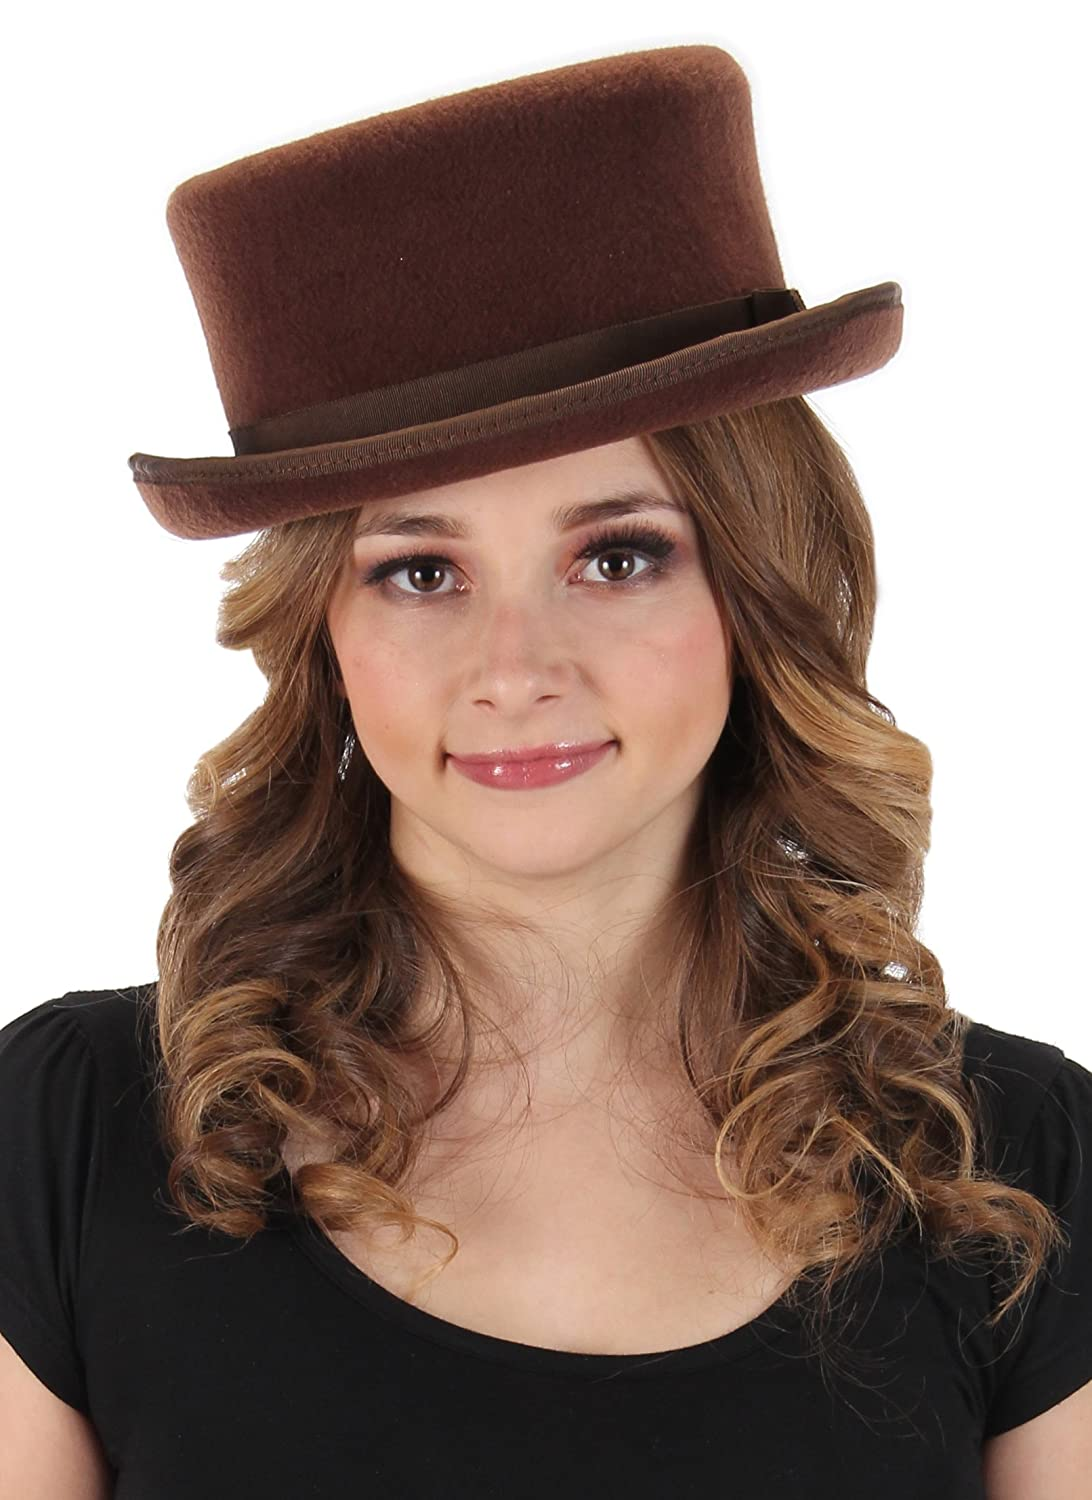 Victorian Hat History | Bonnets, Hats, Caps 1830-1890s Elope John Bull Low Steampunk Top Hat in Brown $35.25 AT vintagedancer.com